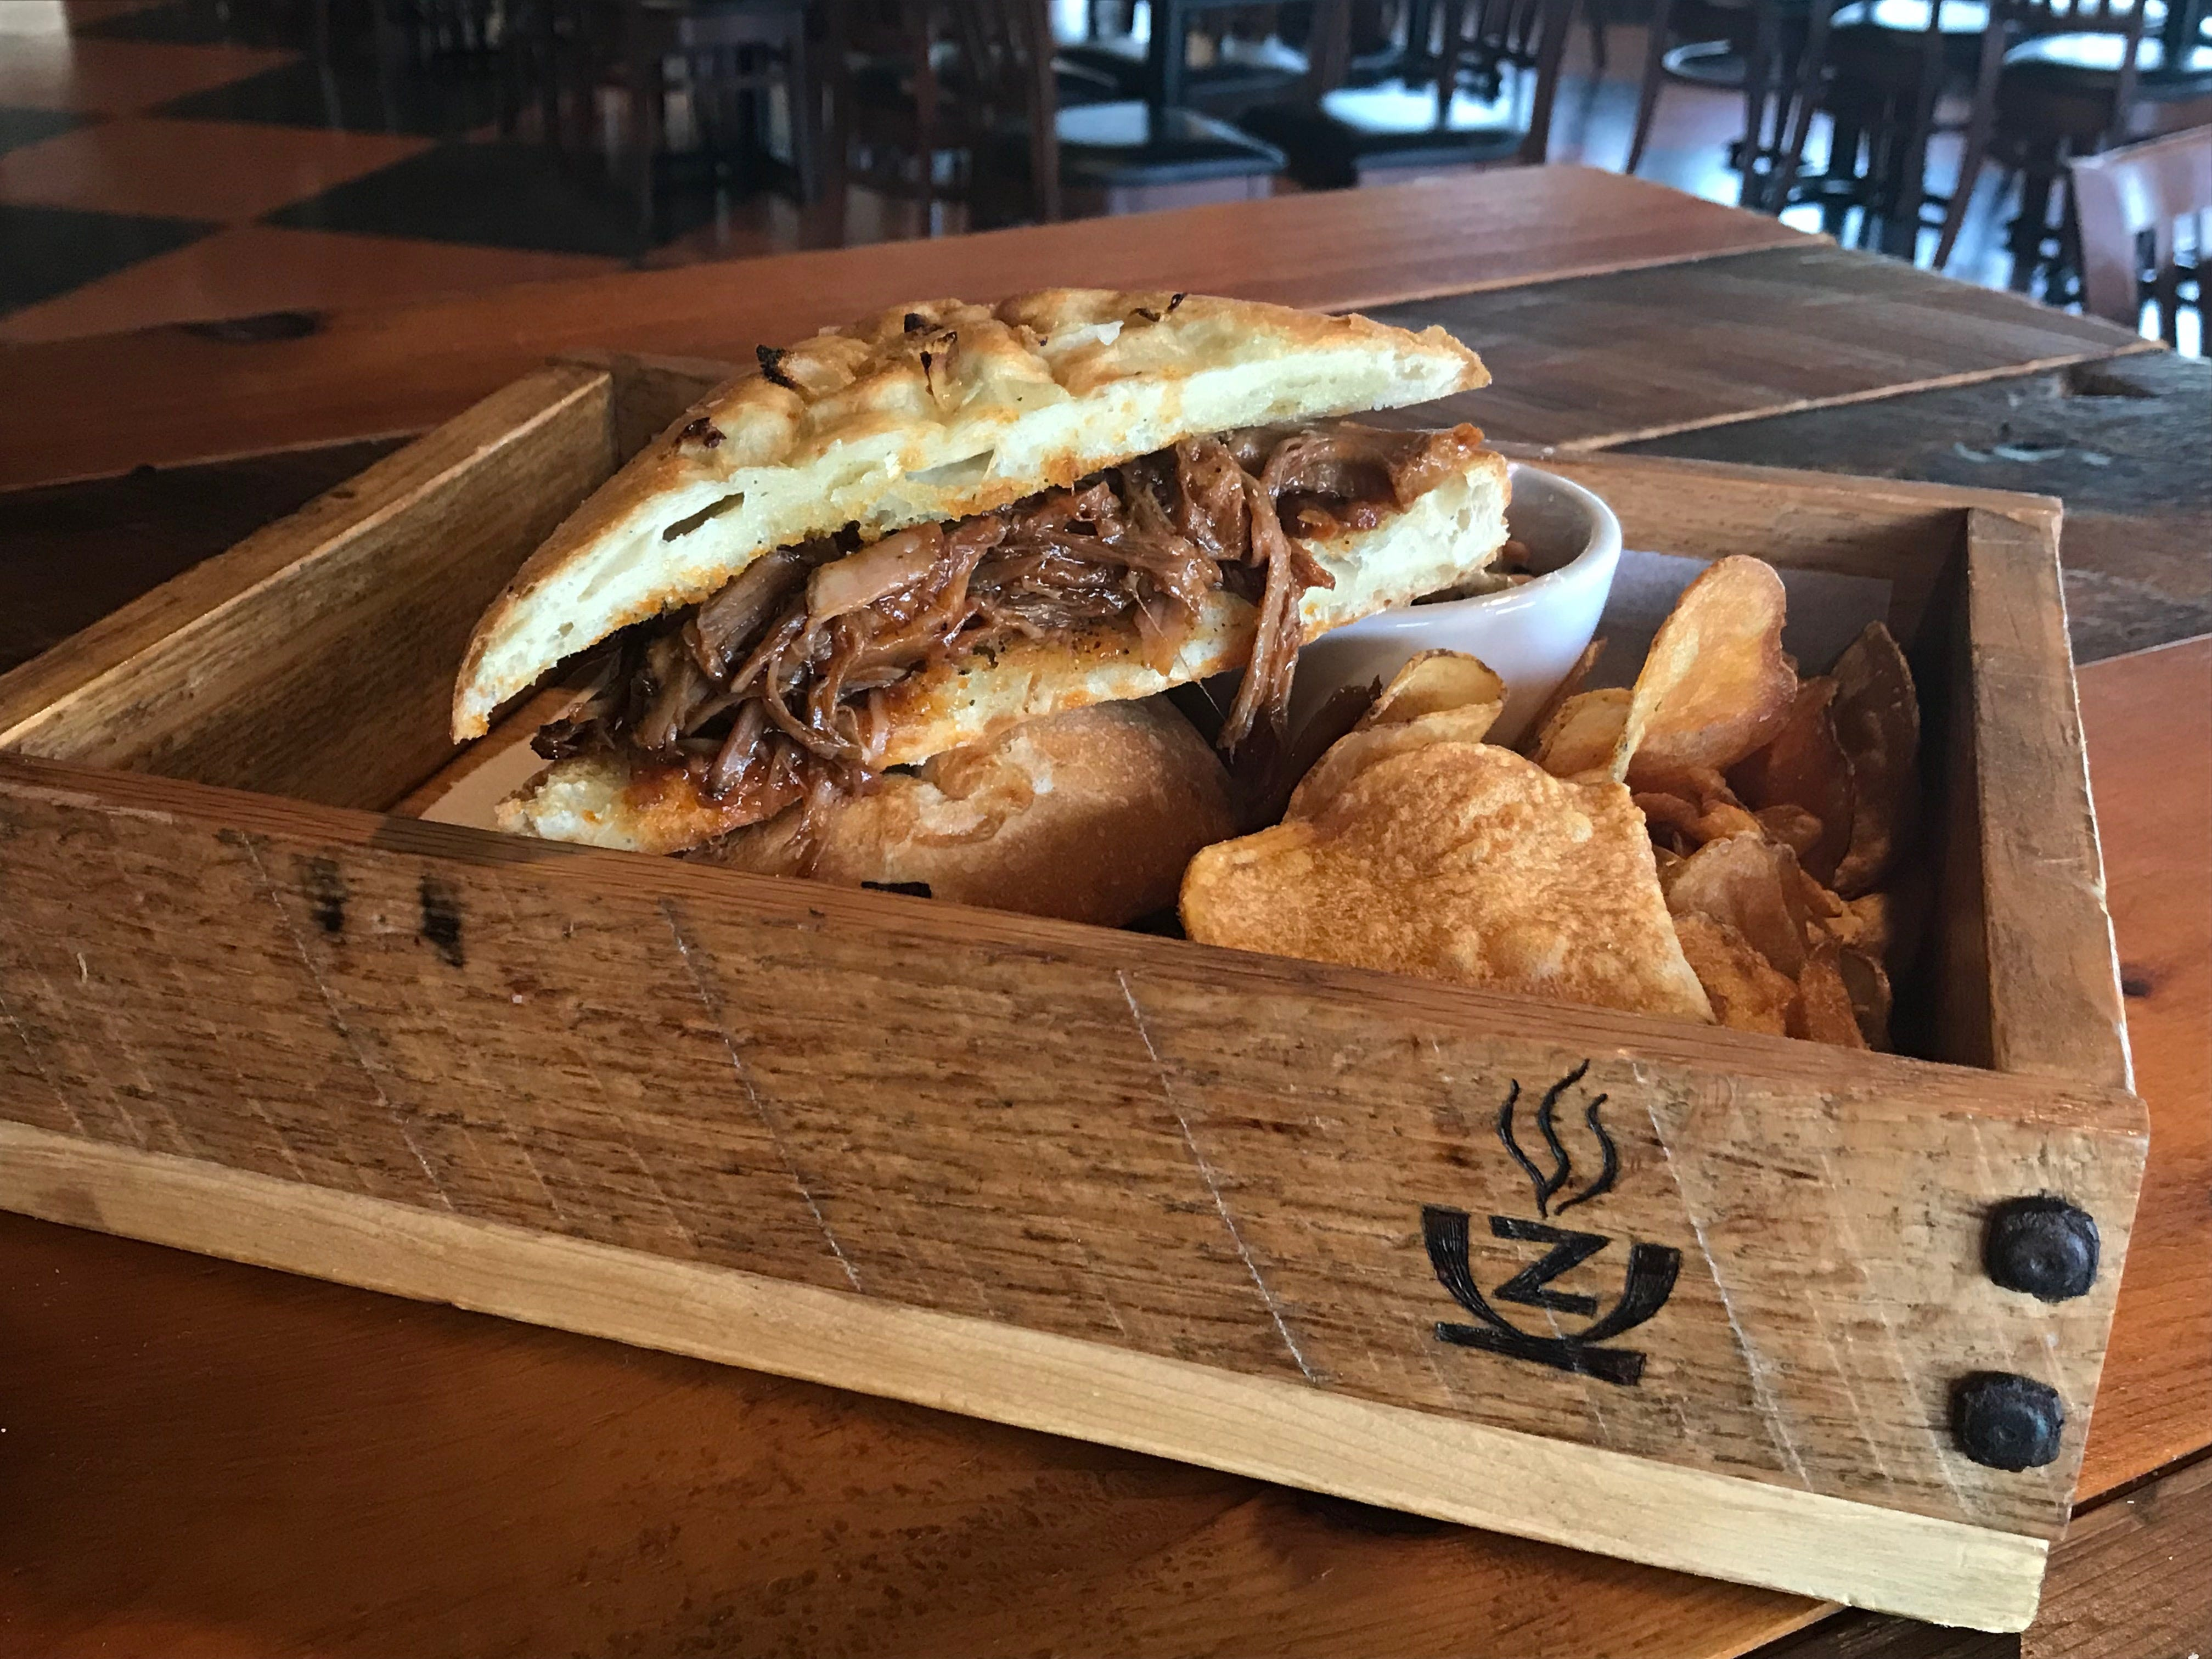 A relatively new addition as a daily feature at the nearly 20 year-old restaurant, the barbecue pork sandwich is served in boxes built by former Zuppas employee.